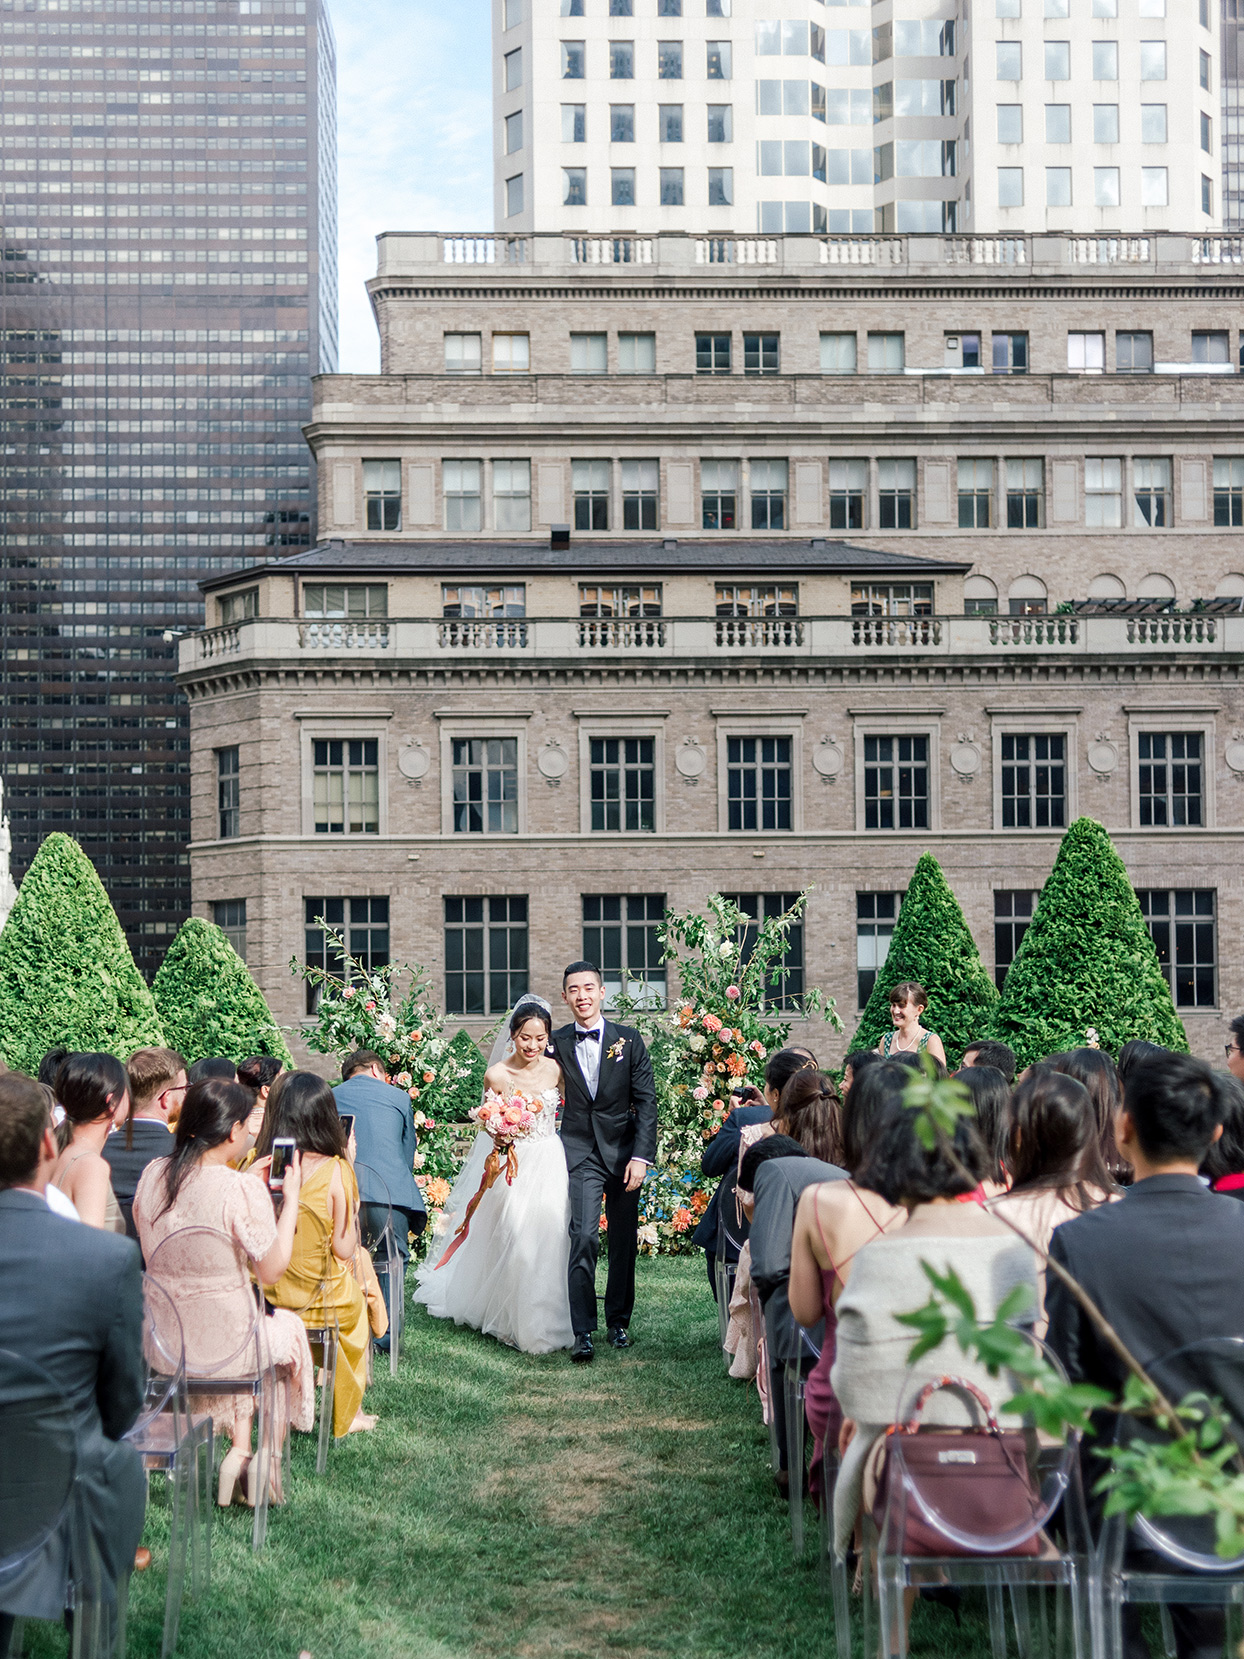 couple walking down aisle at rooftop garden ceremony